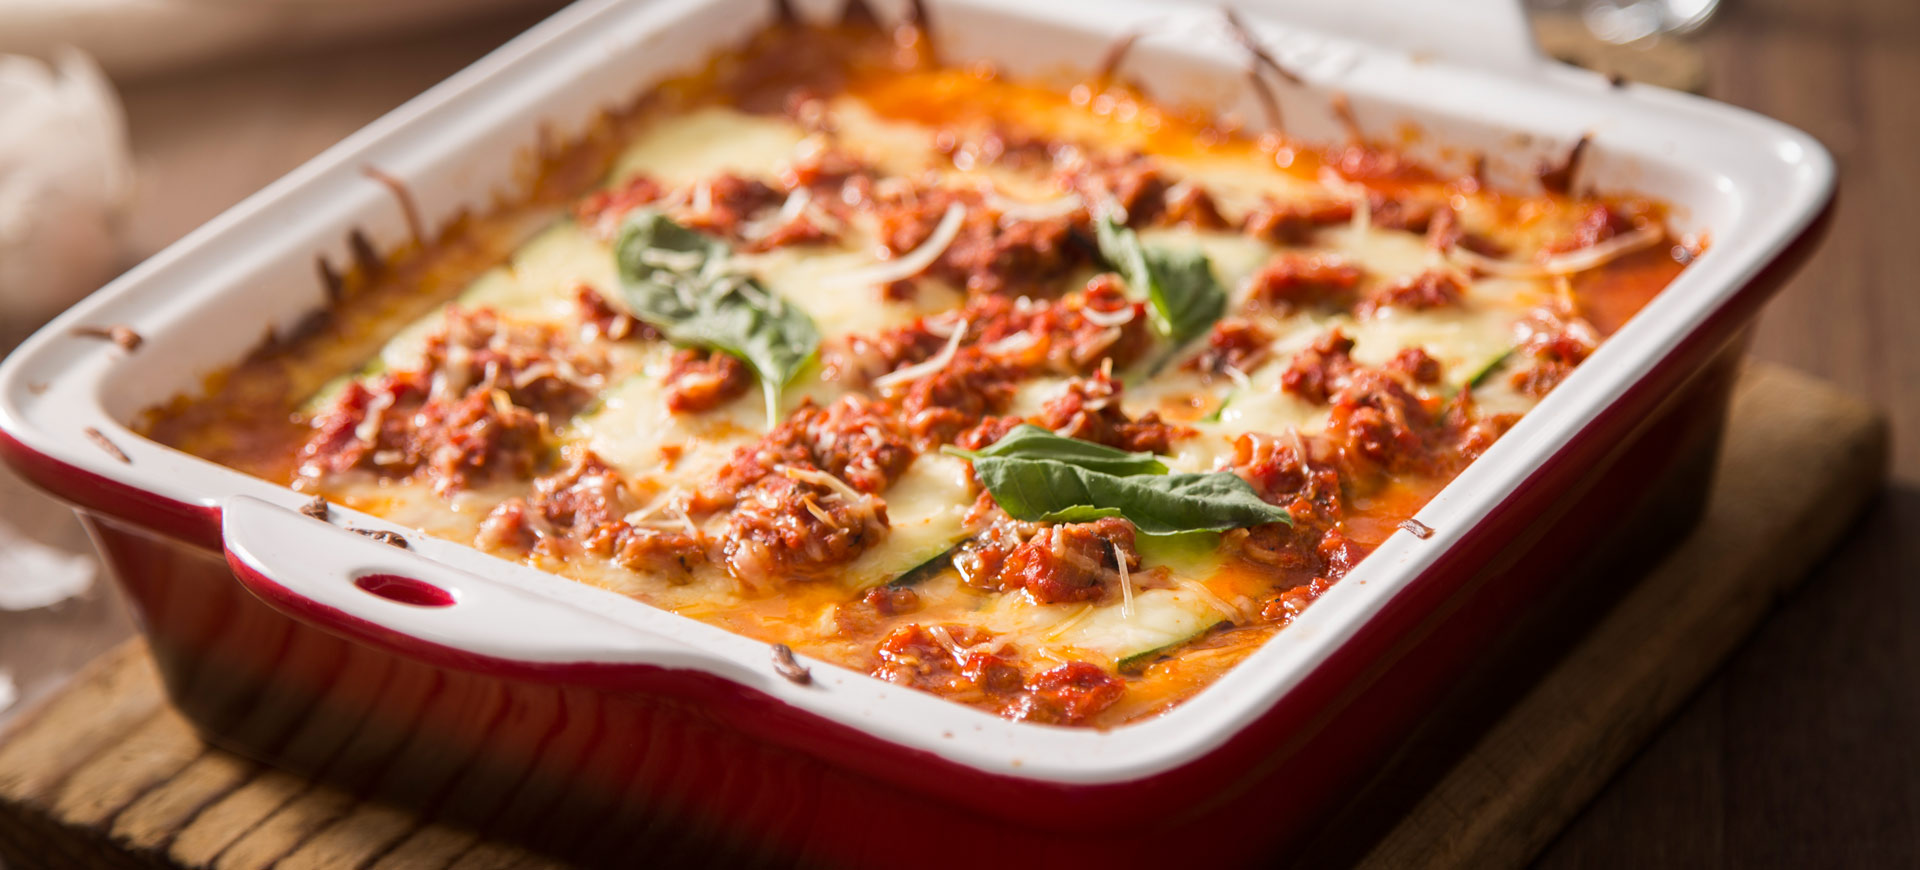 Lasagna: From Ancient Greece to Your Table